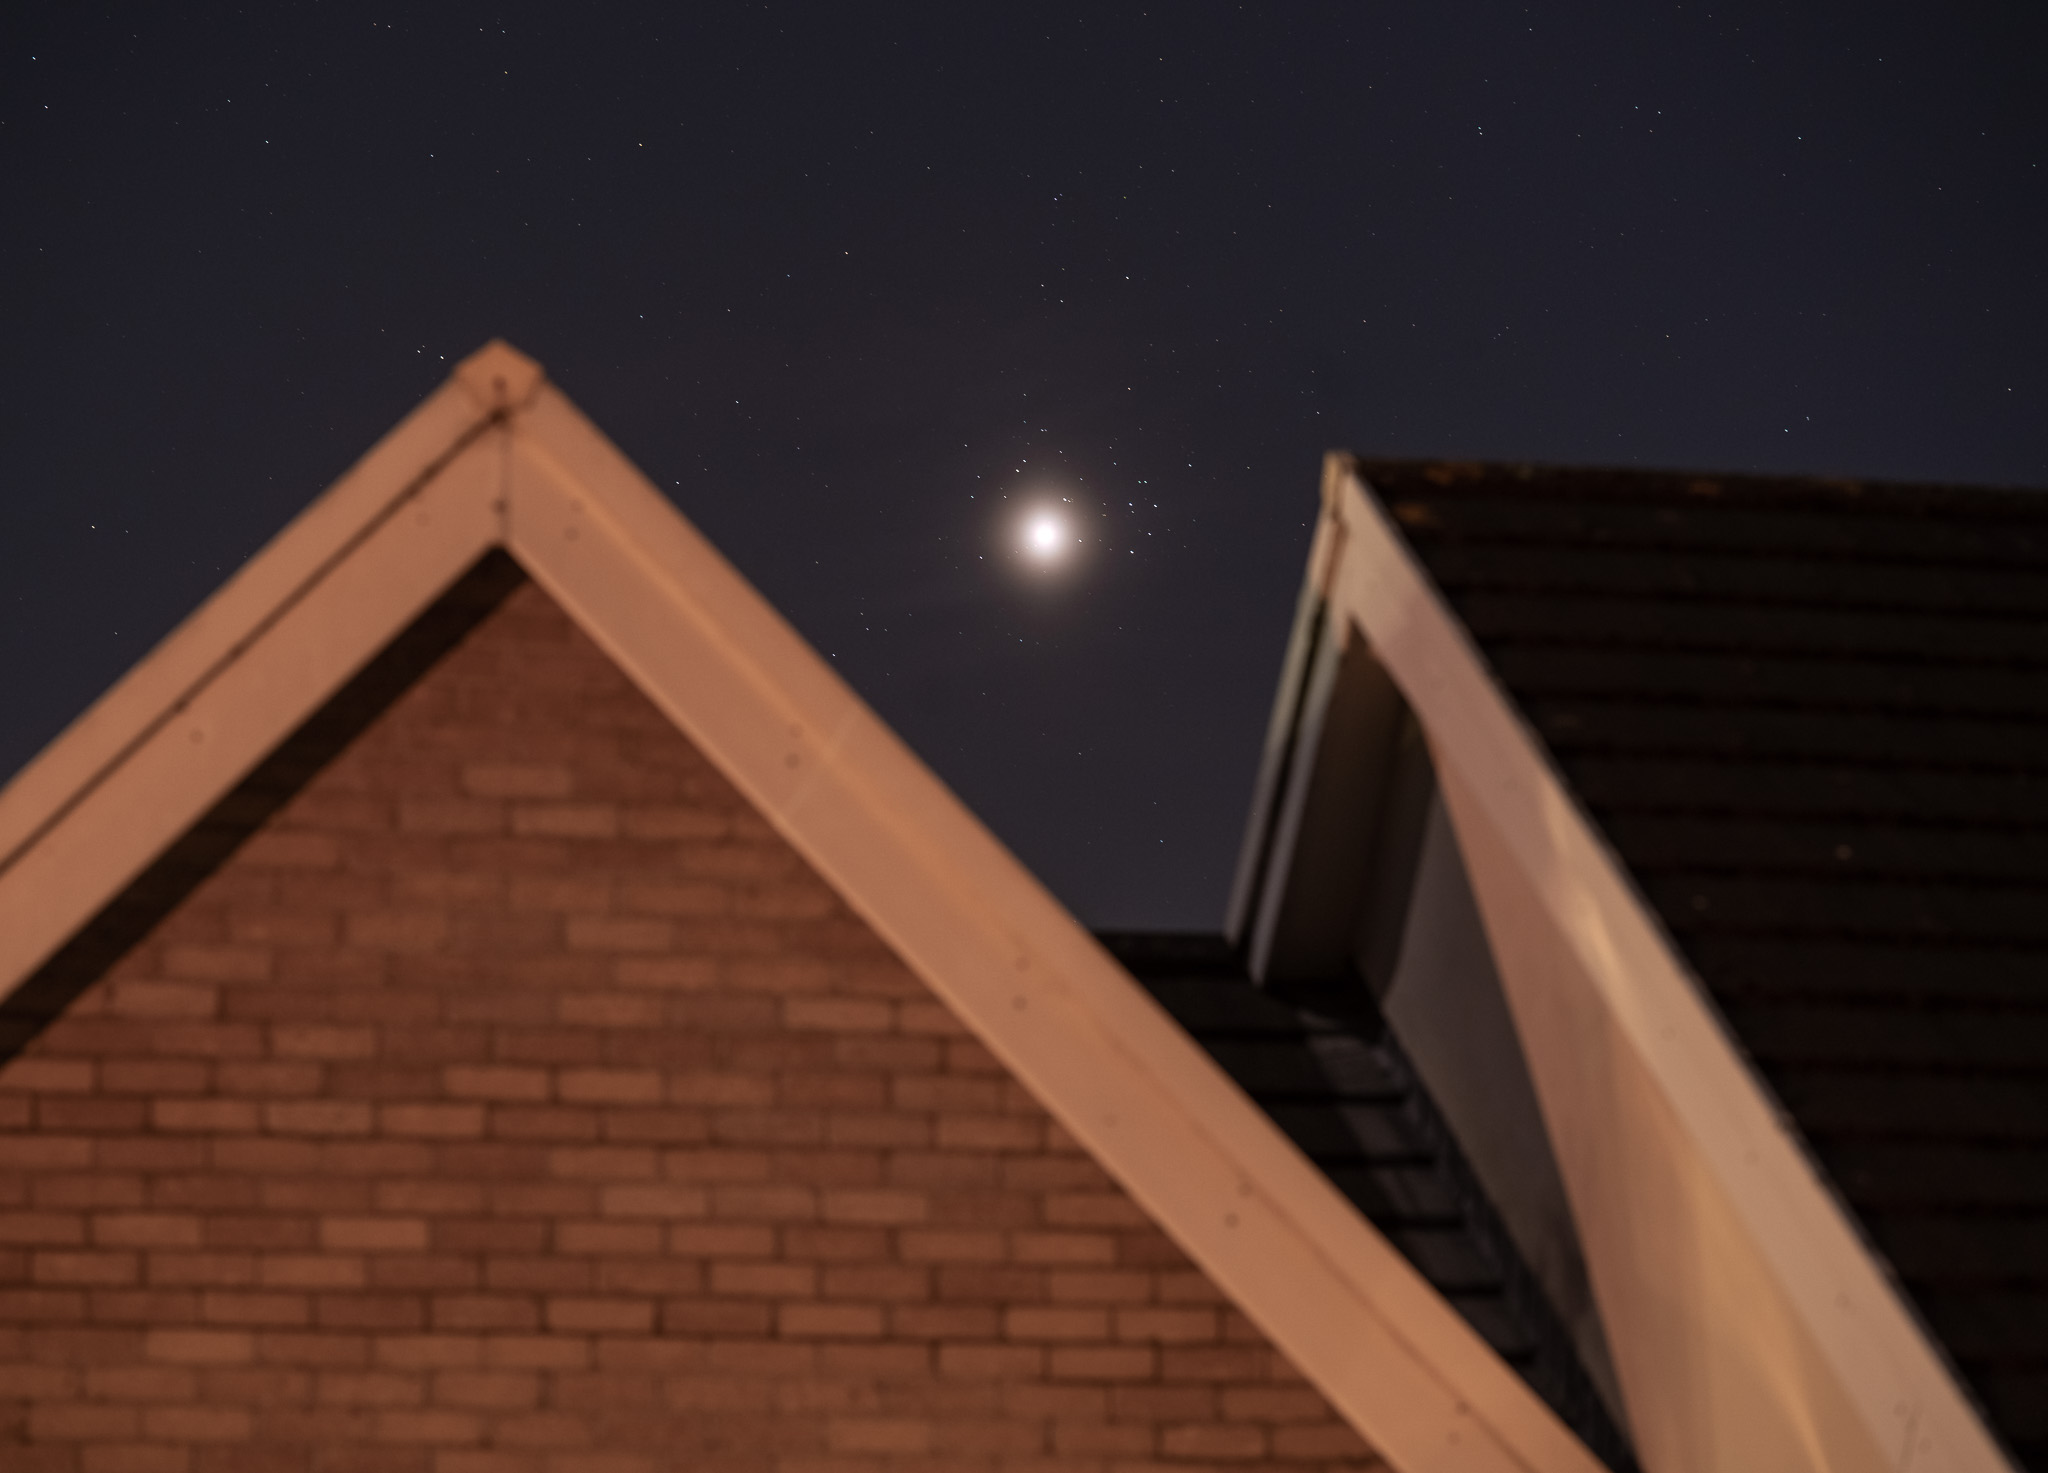 venus and pleiades above rooftops